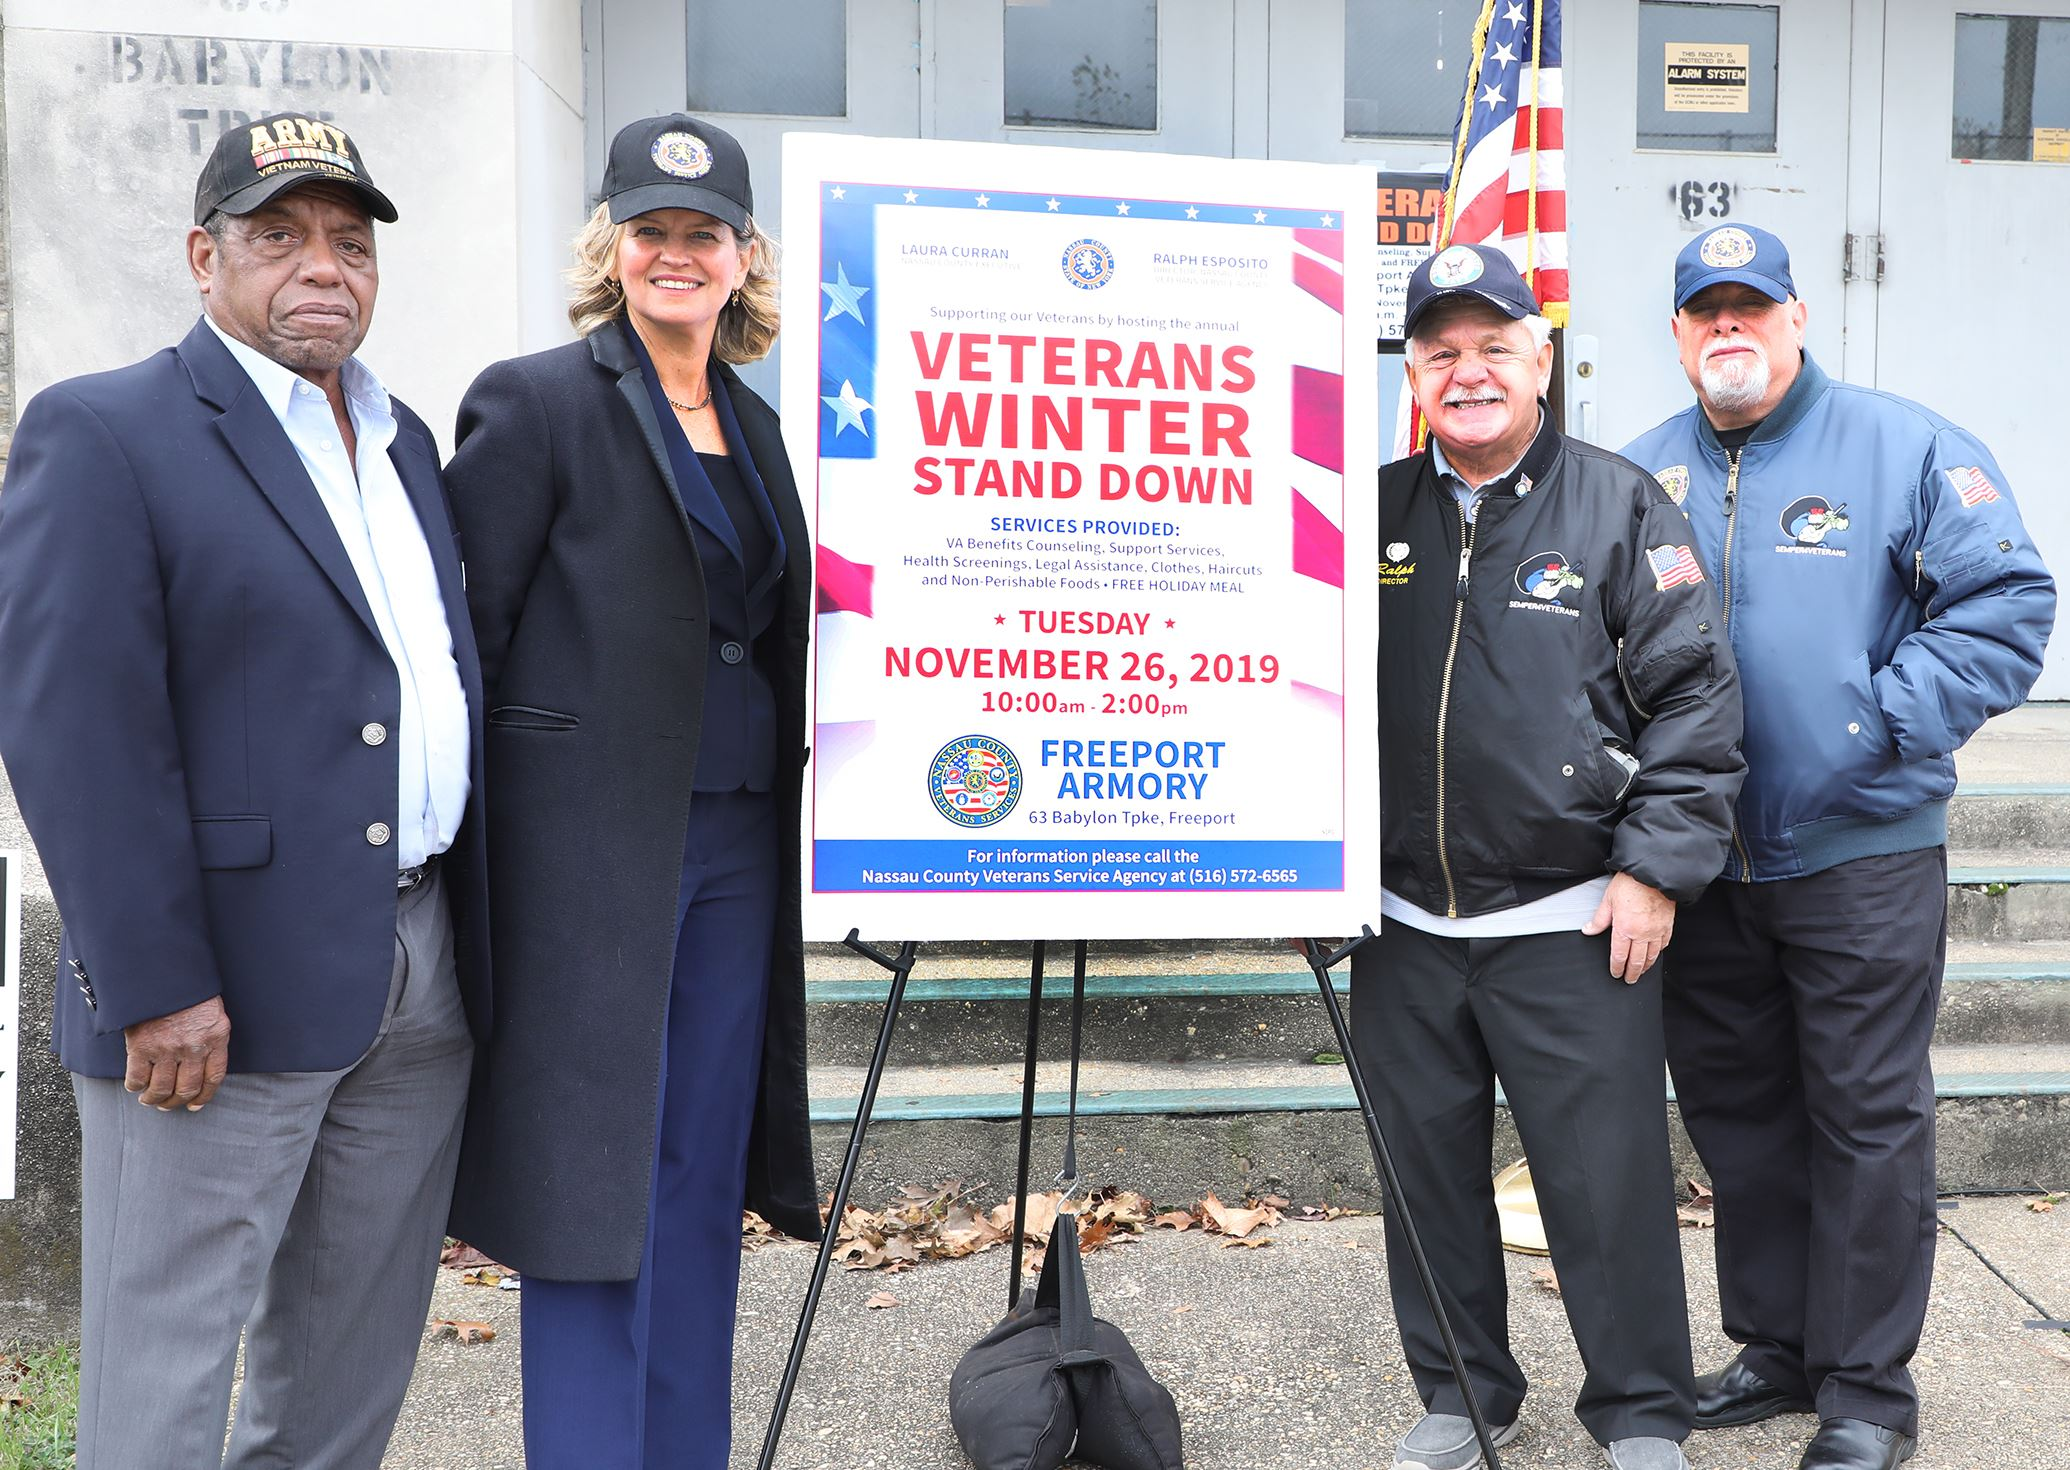 Ahead of Veterans Day Curran asks Veterans to Check in with County